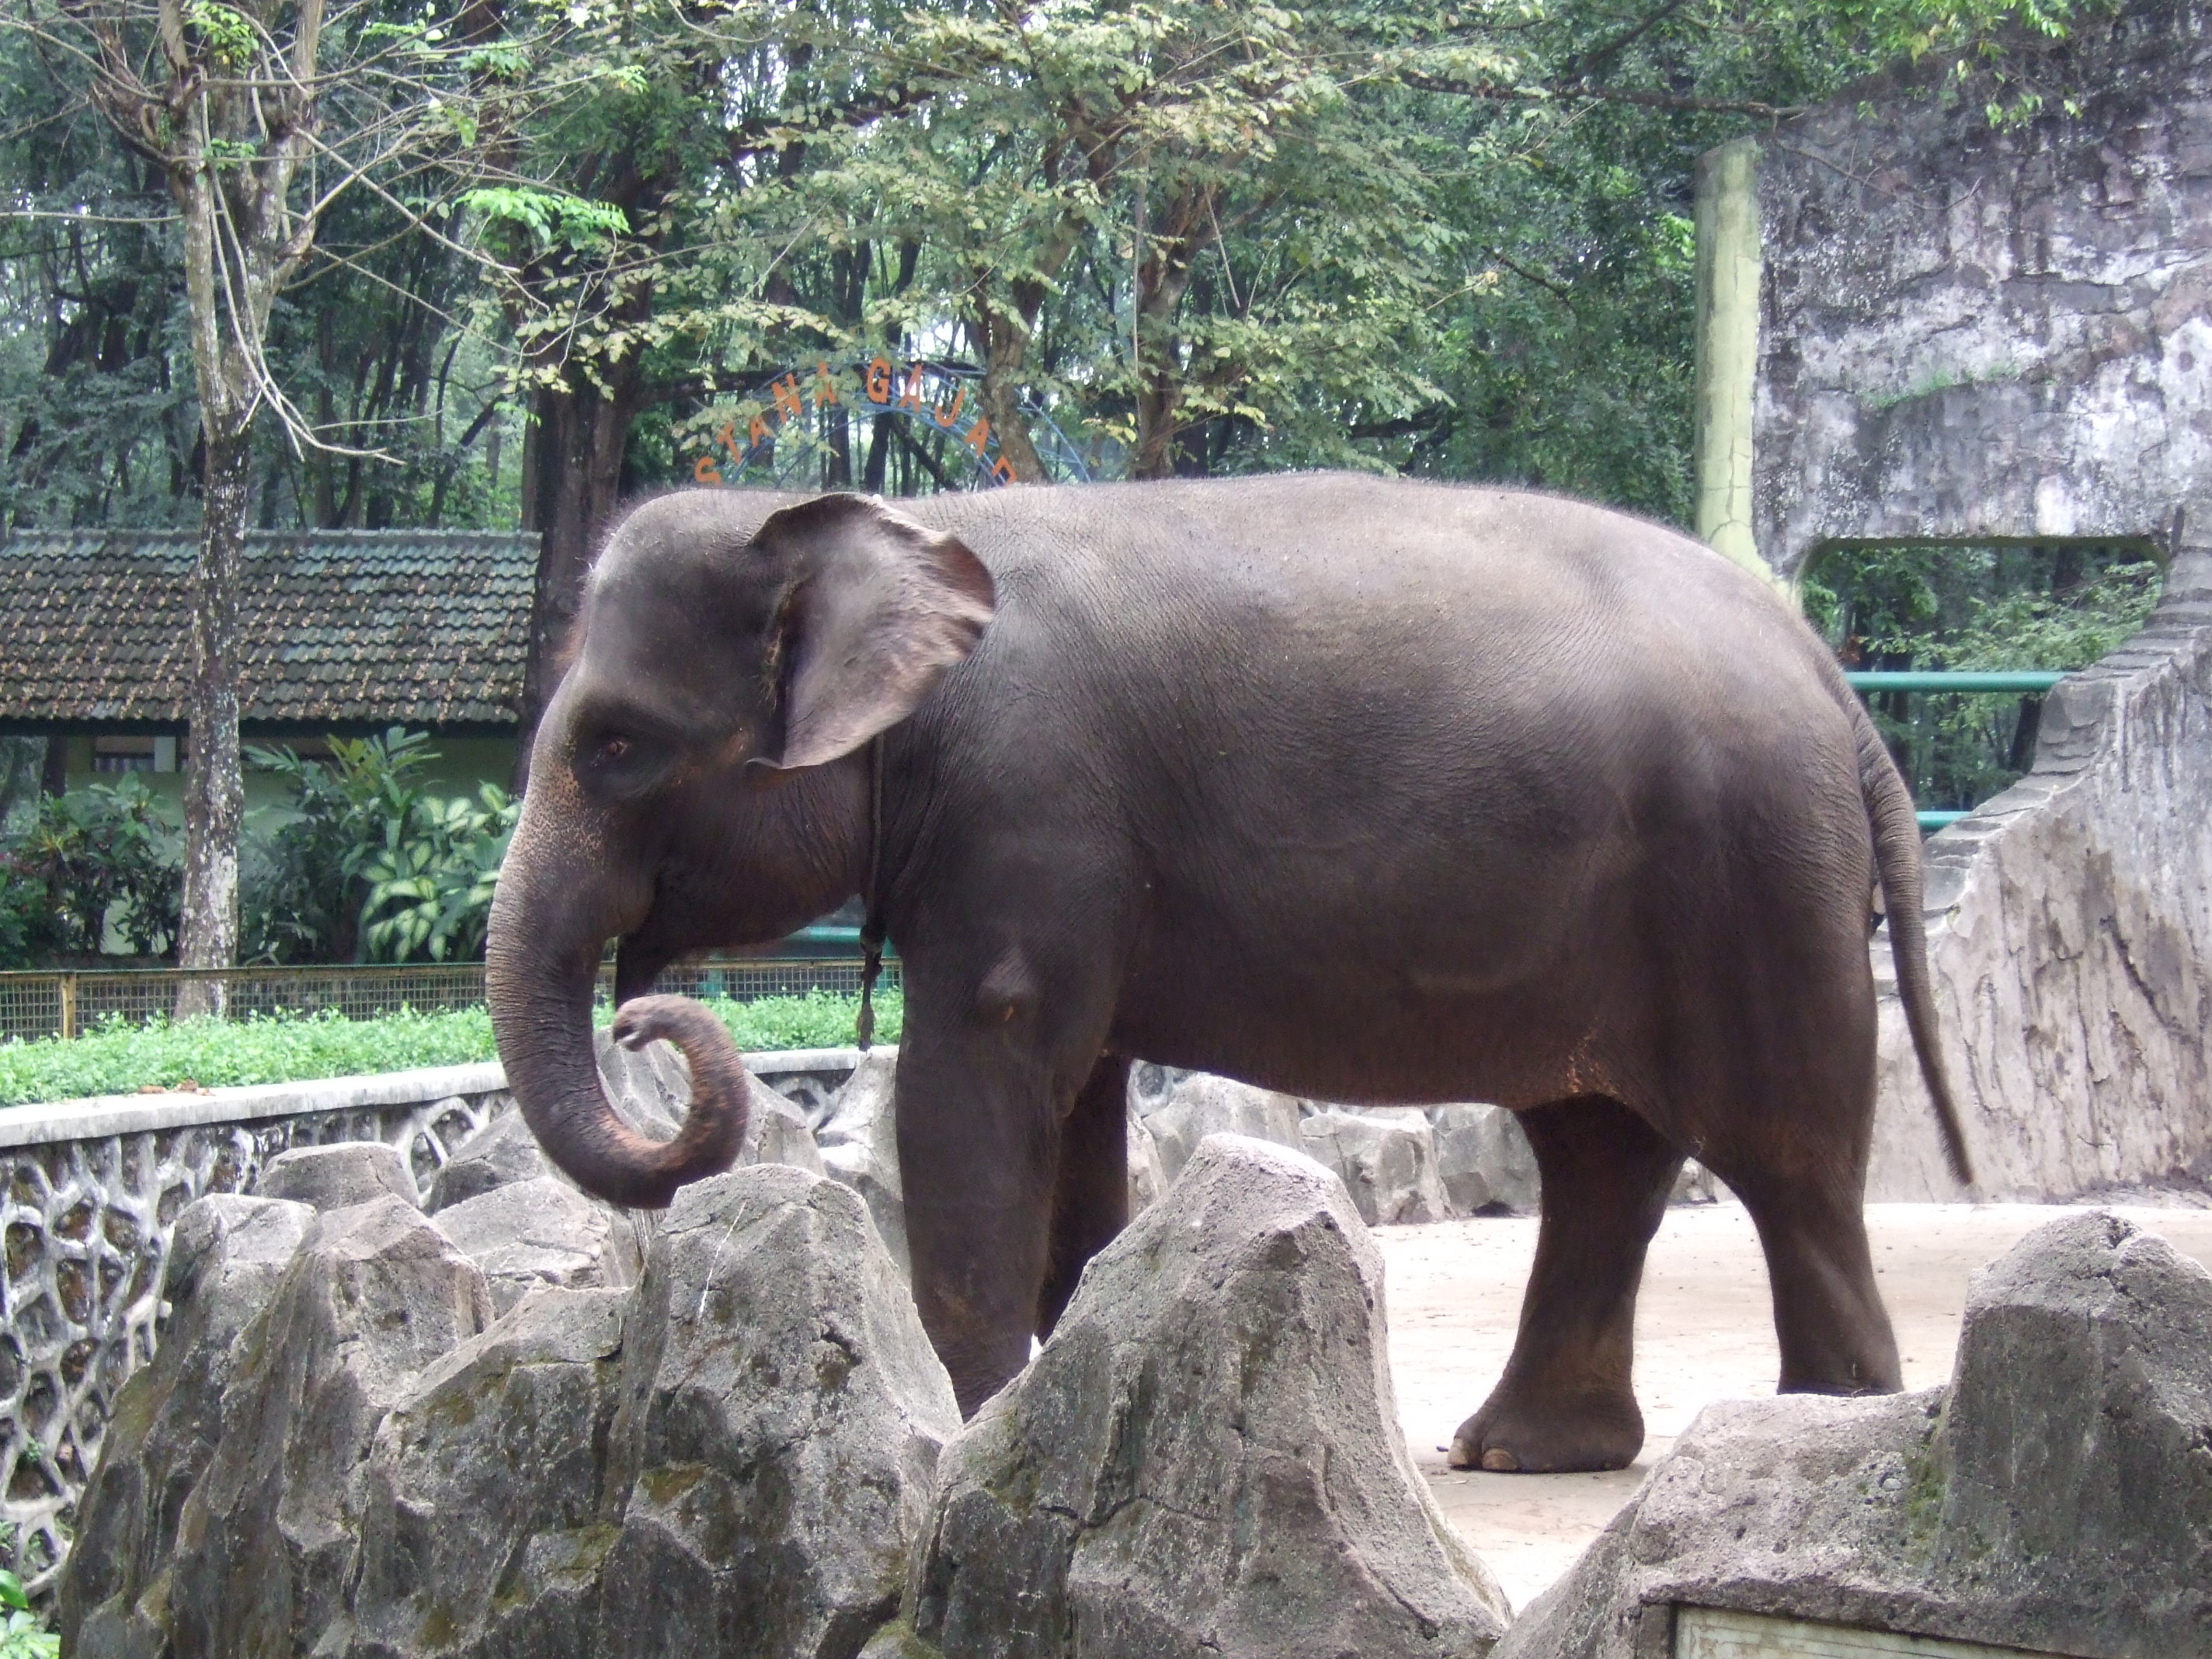 https://upload.wikimedia.org/wikipedia/commons/2/2a/Sumatra_elephant_Ragunan_Zoo_3.JPG